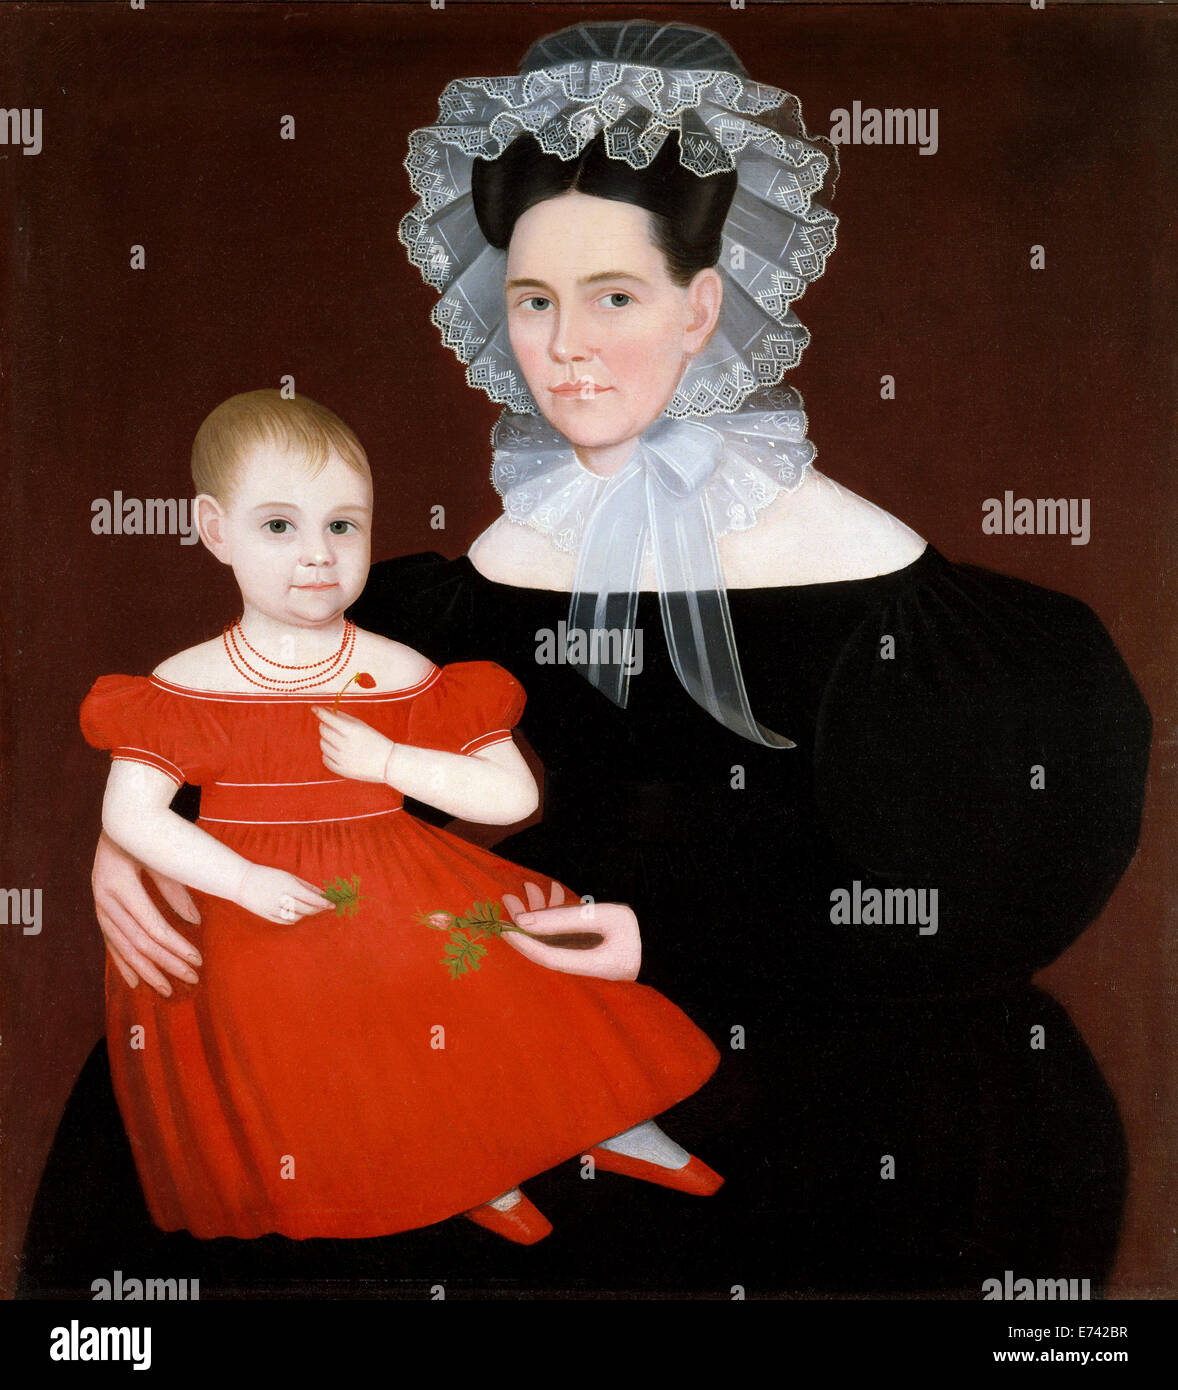 Mrs. Mayer and Daughter - by Ammi Phillips, 1835 - Stock Image